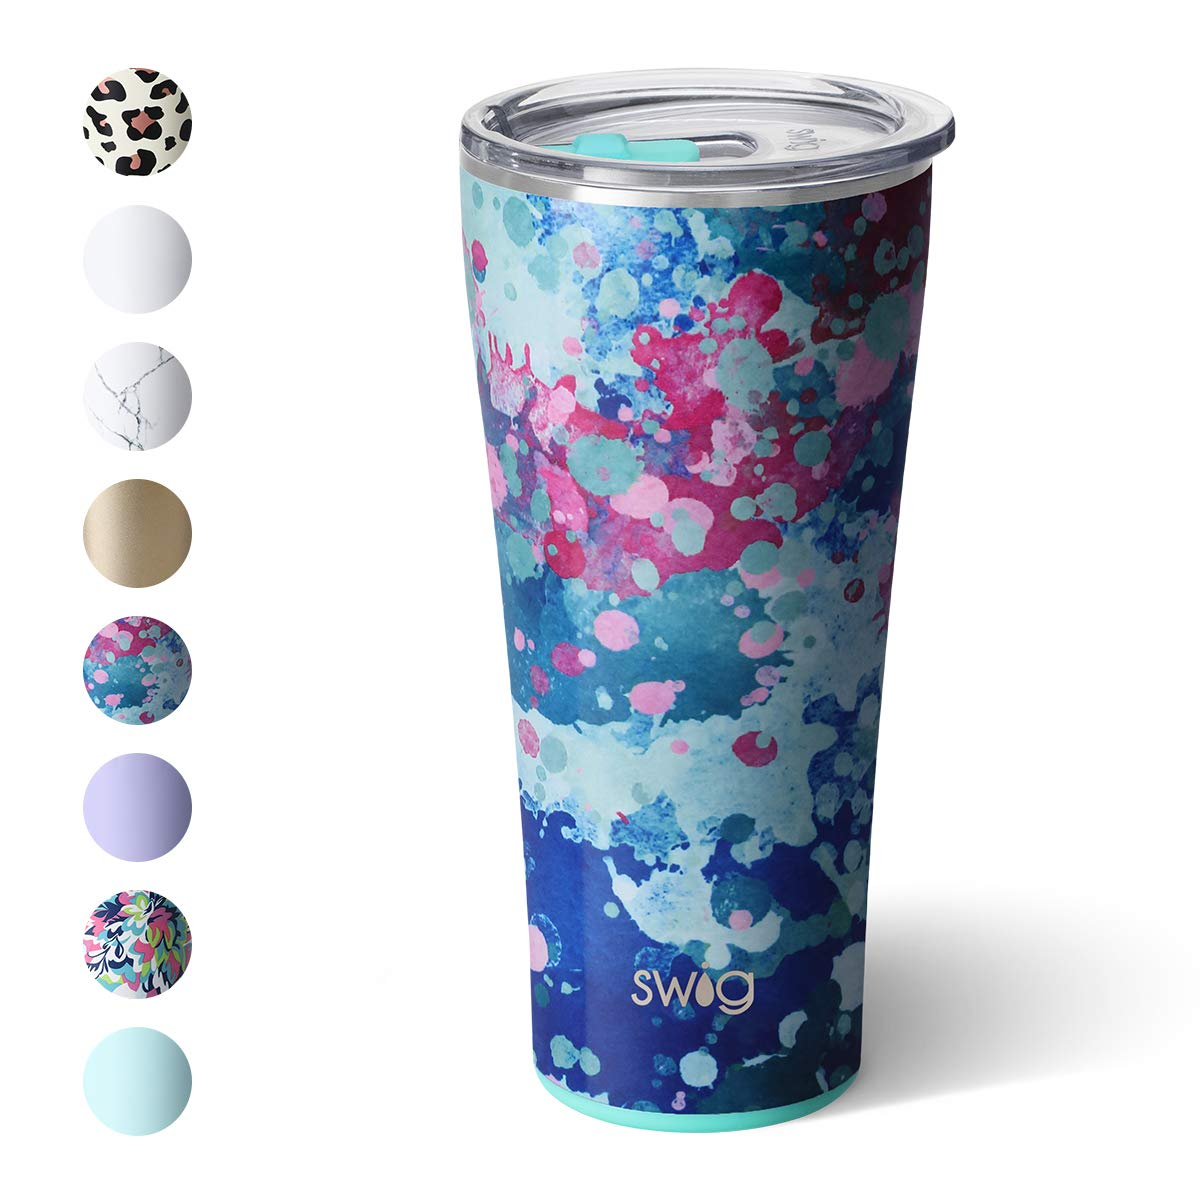 Swig Life 32oz Triple Insulated Stainless Steel Tumbler with Lid, Dishwasher Safe, Double Wall, and Vacuum Sealed Travel Coffee Tumbler in our Artist Speckle Pattern (Multiple Patterns Available)